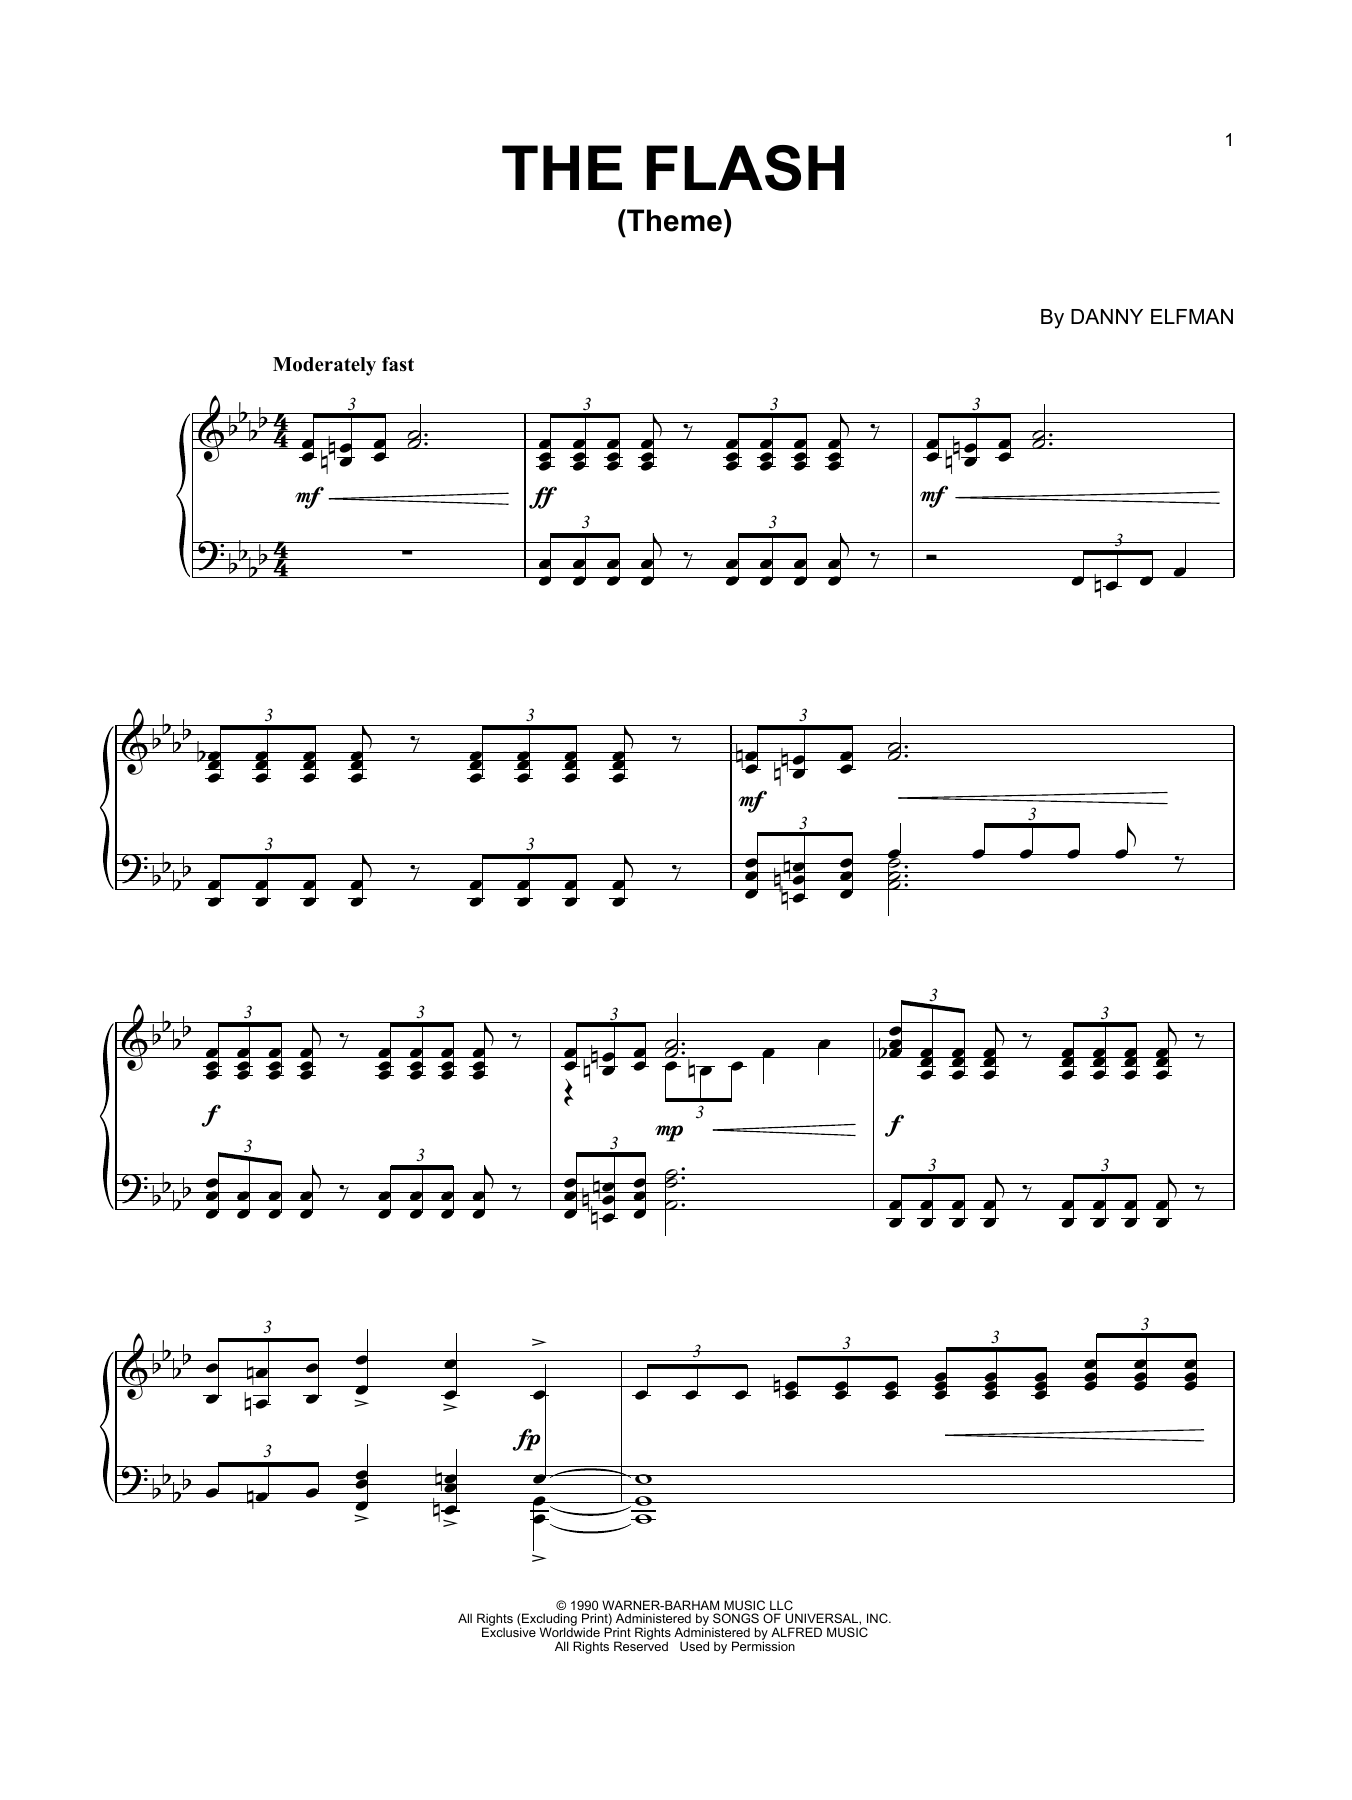 Theme From The Flash (Piano Solo)